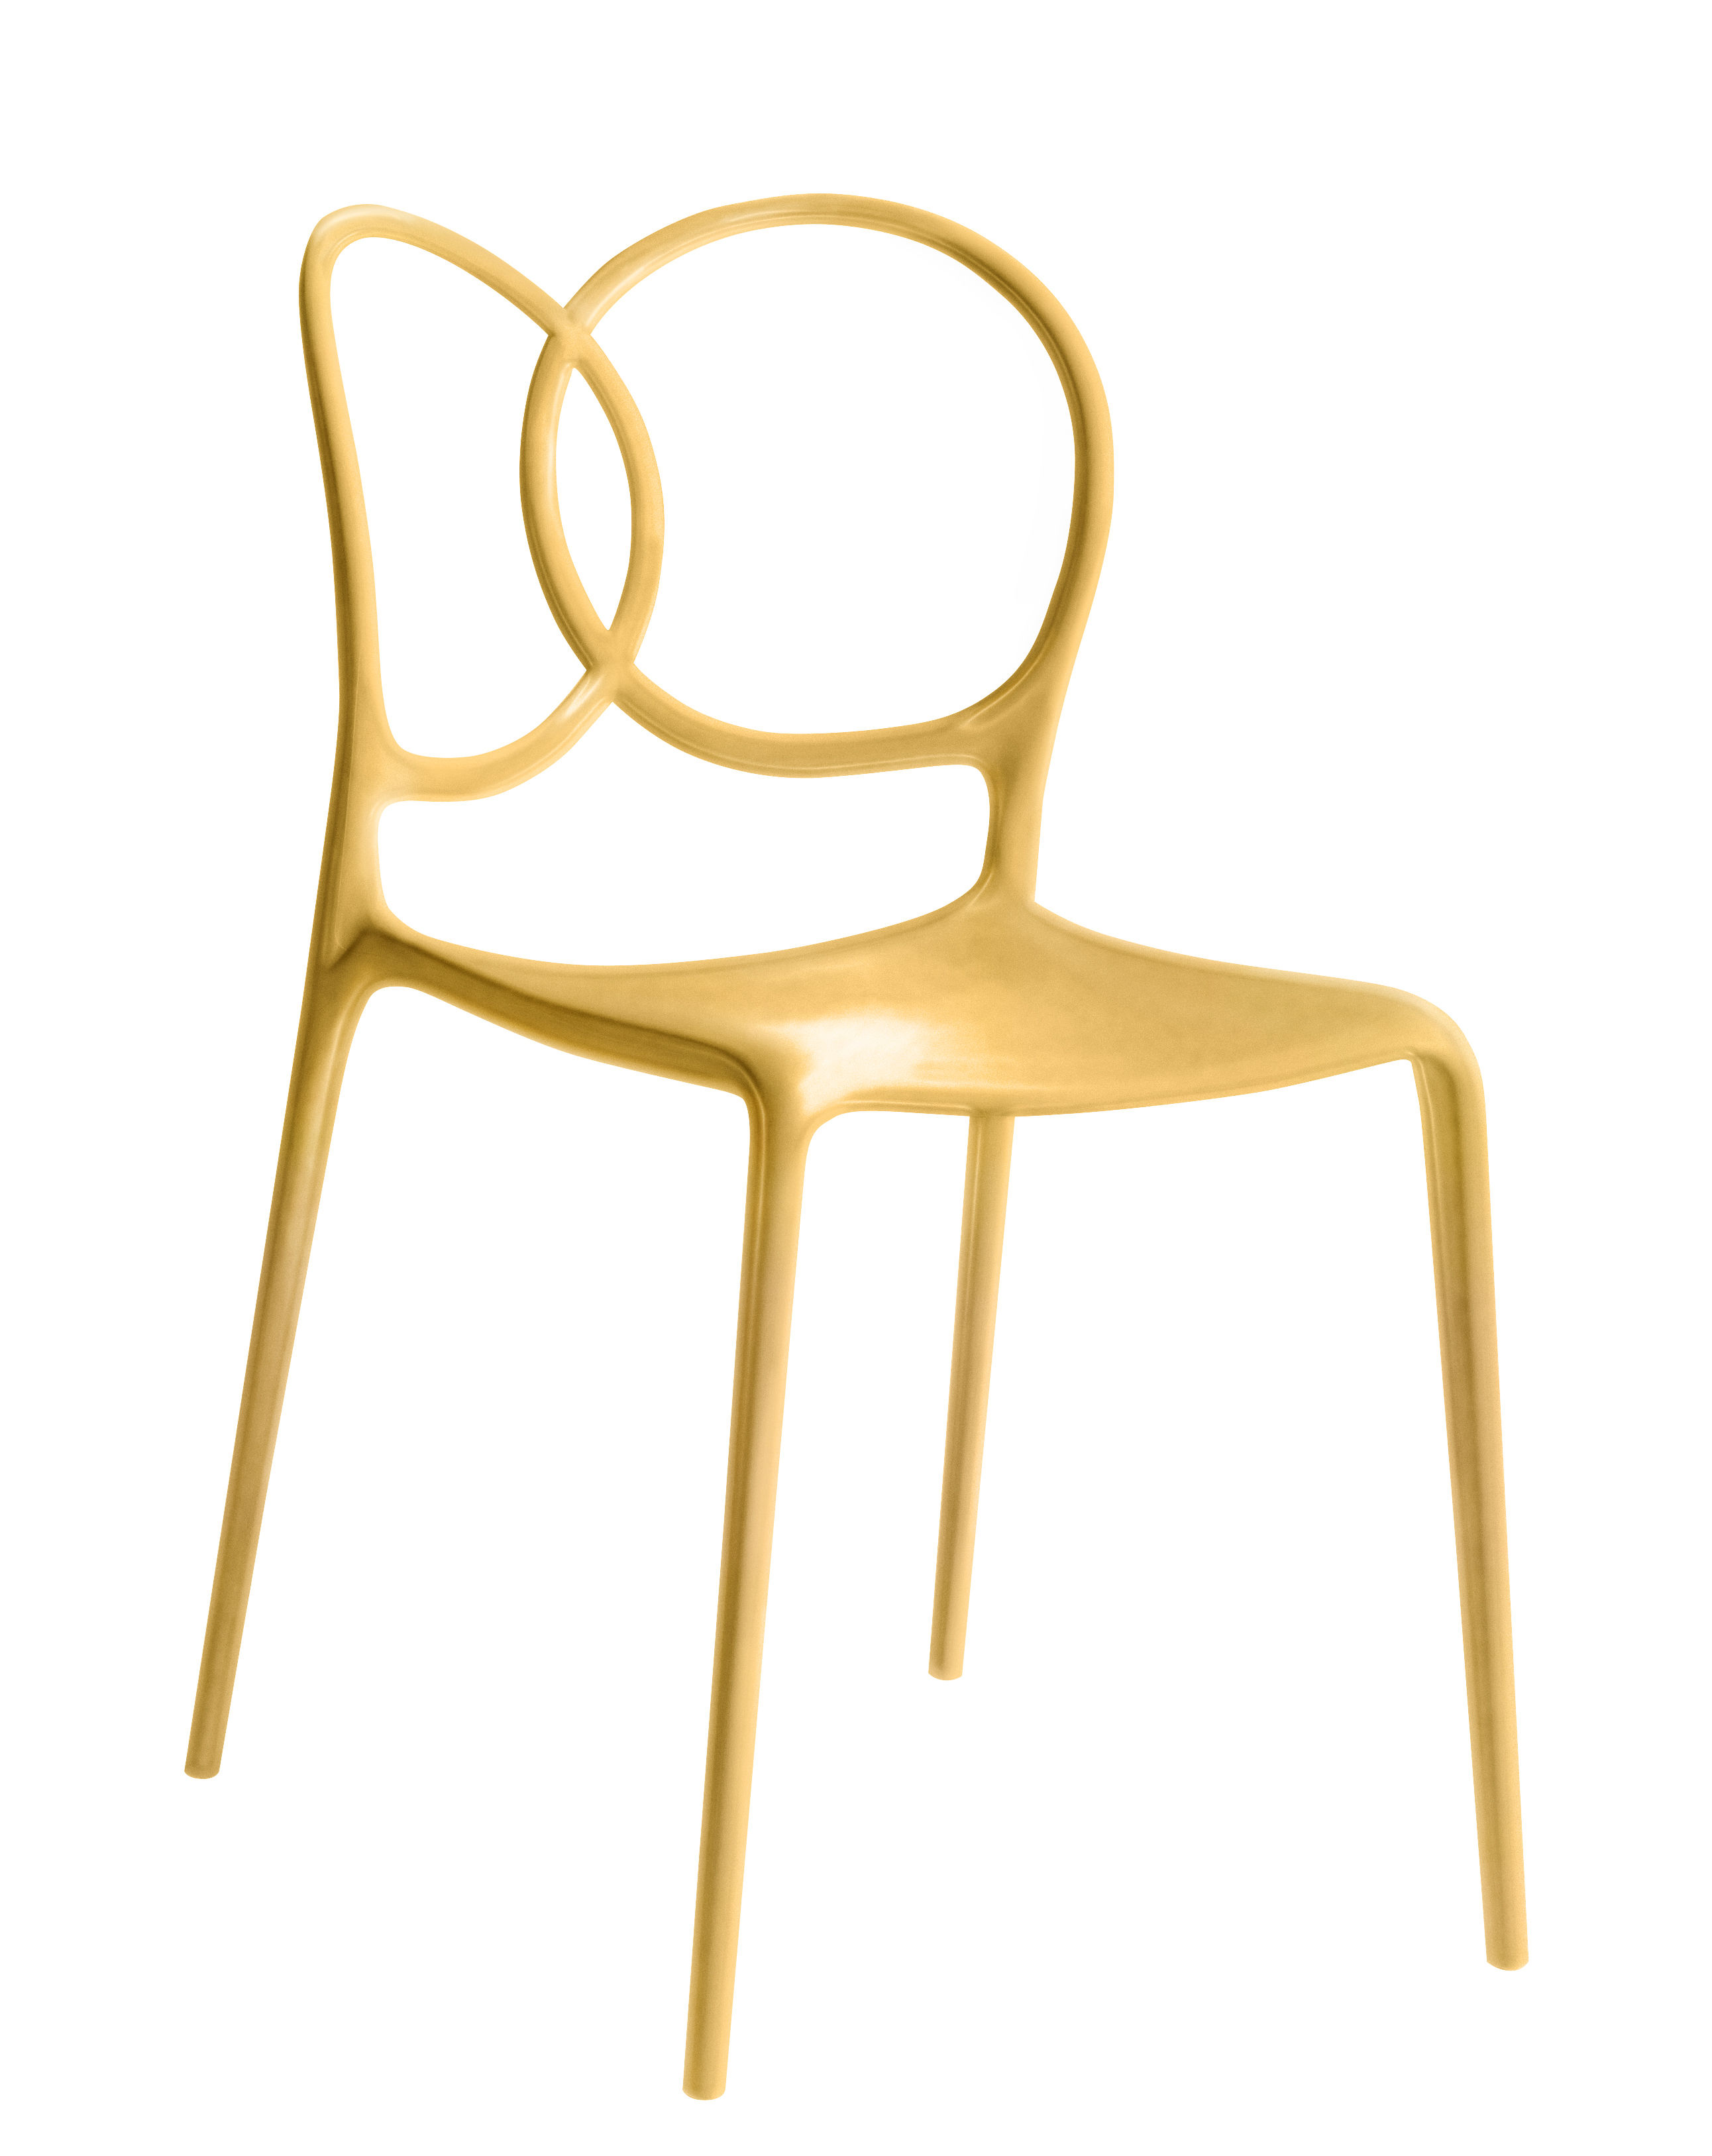 Furniture - Chairs - Sissi Stacking chair - Indoor by Driade - Gold - Fibreglass, Polypropylene, Polythene